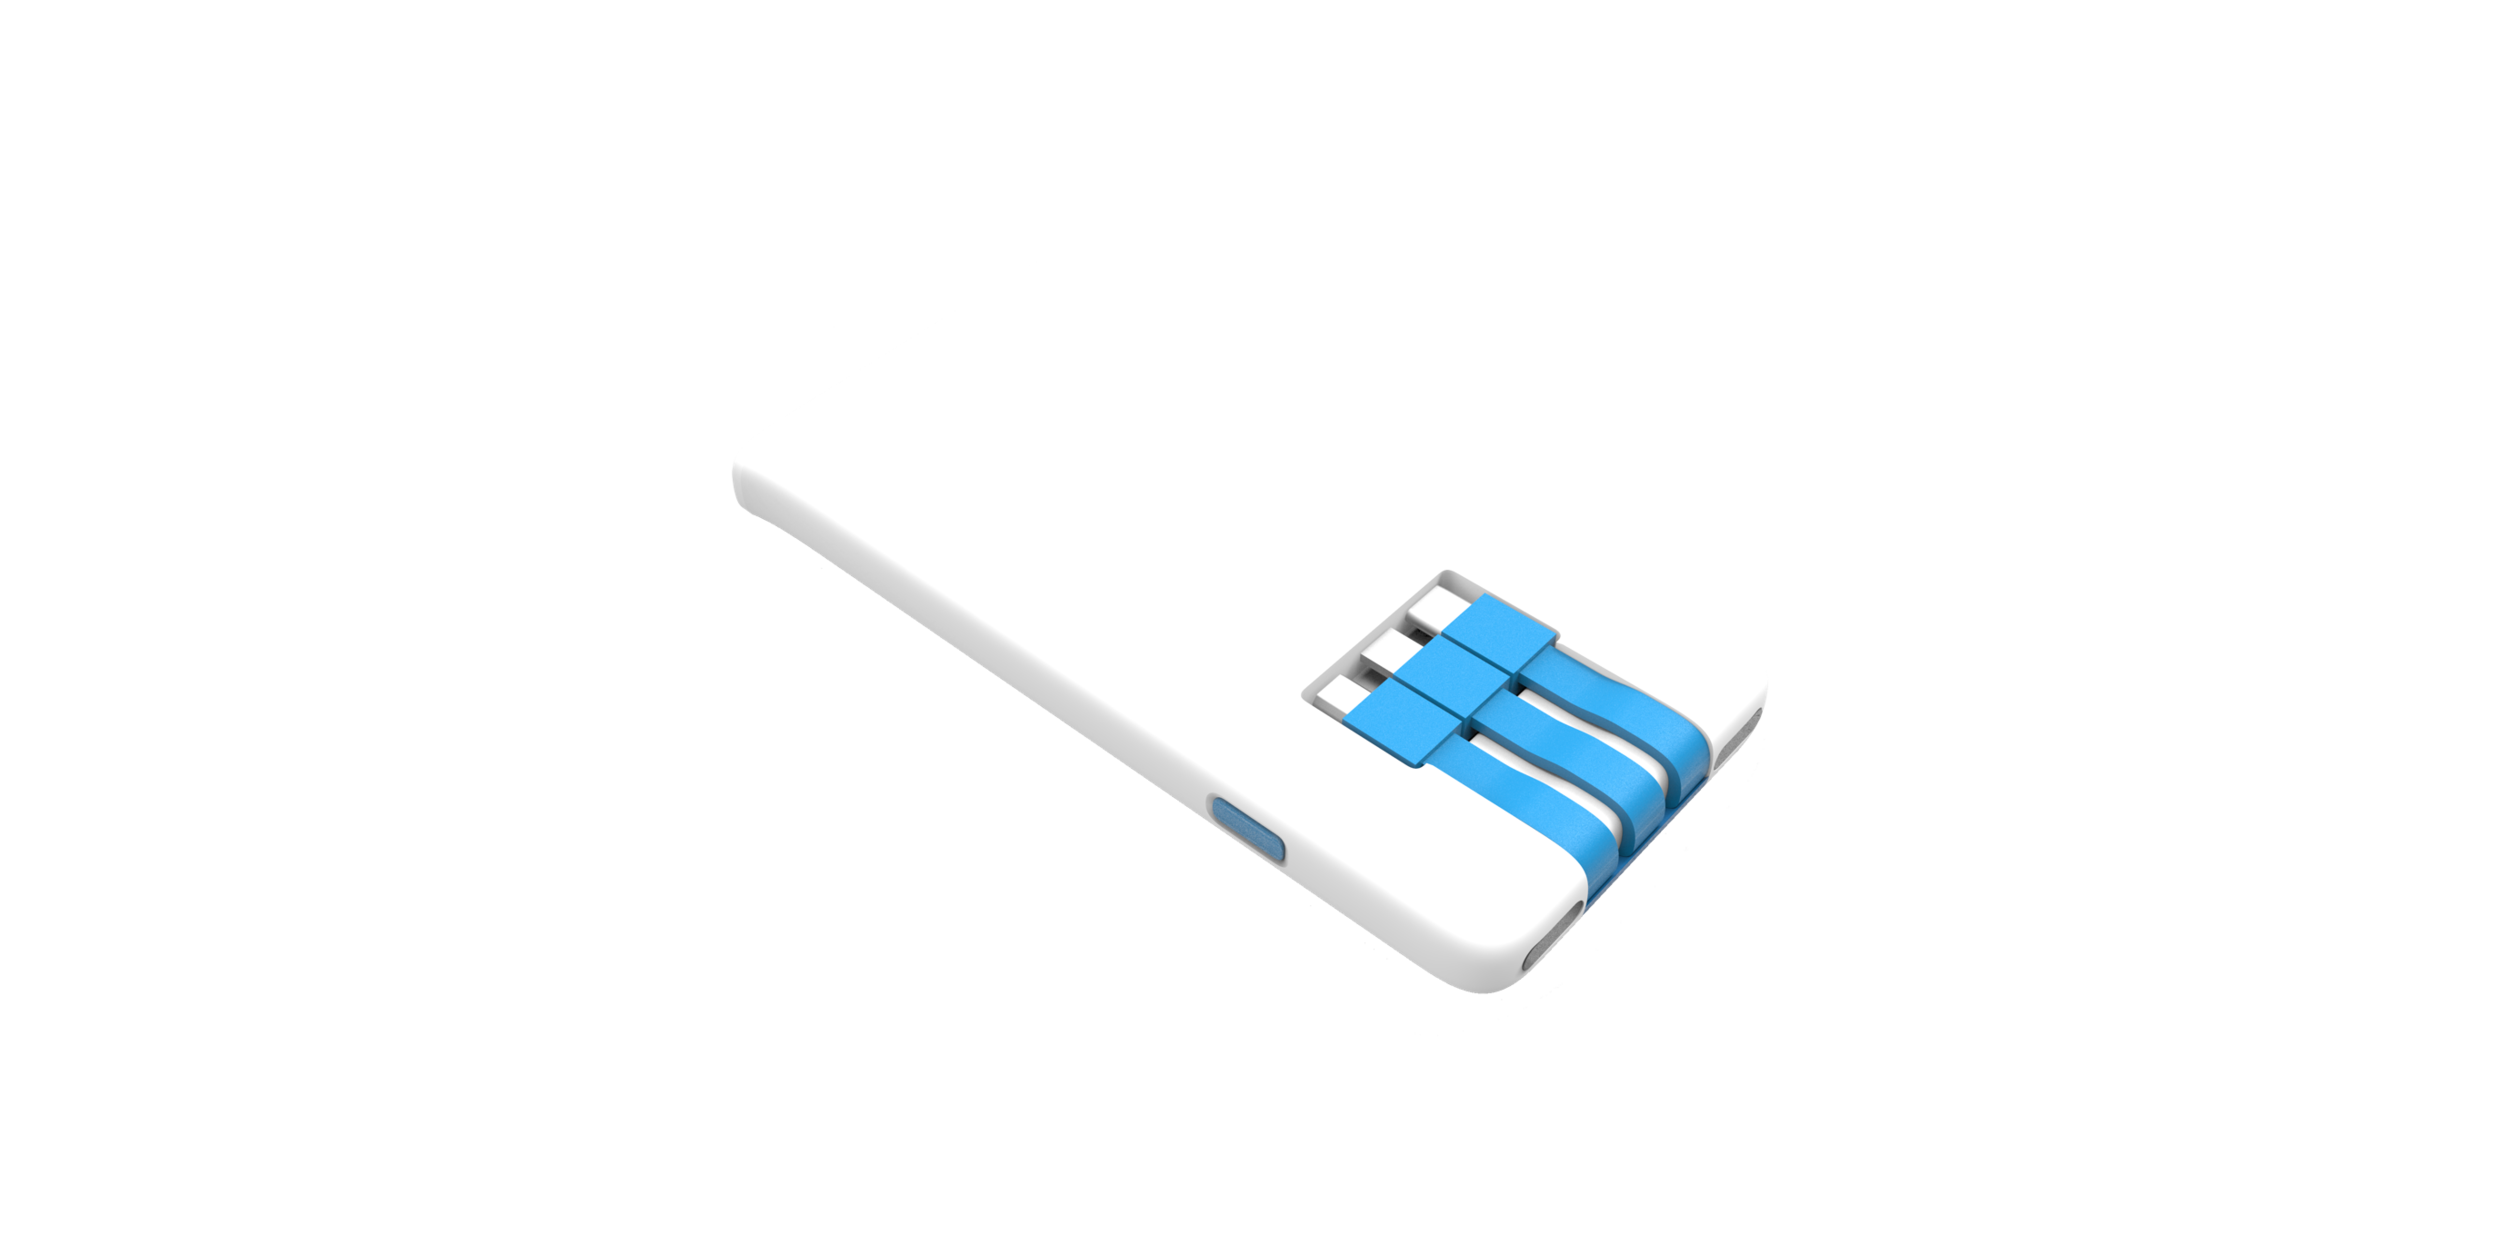 Running Low on Battery? - Introducing the Juixbox - an on-demand power bank featuring a Micro-USB, USB-C, and Lightning connector, designed to charge any smartphone or mobile accessory.